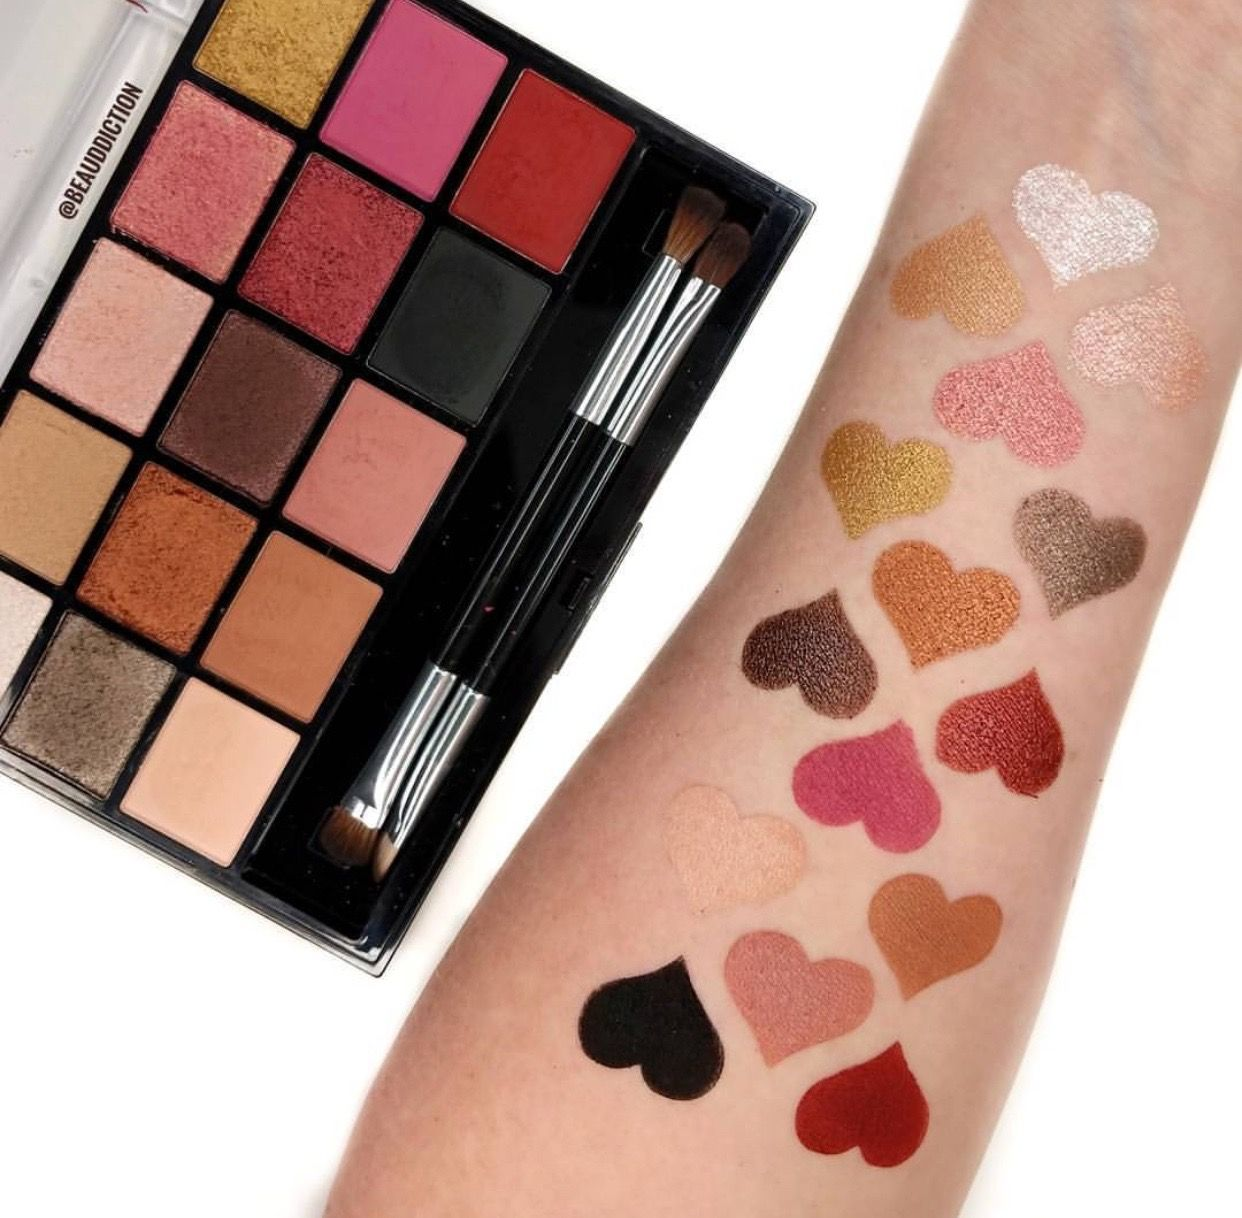 Arm Finger Swatches of the Makeup Revolution Eyeshadow